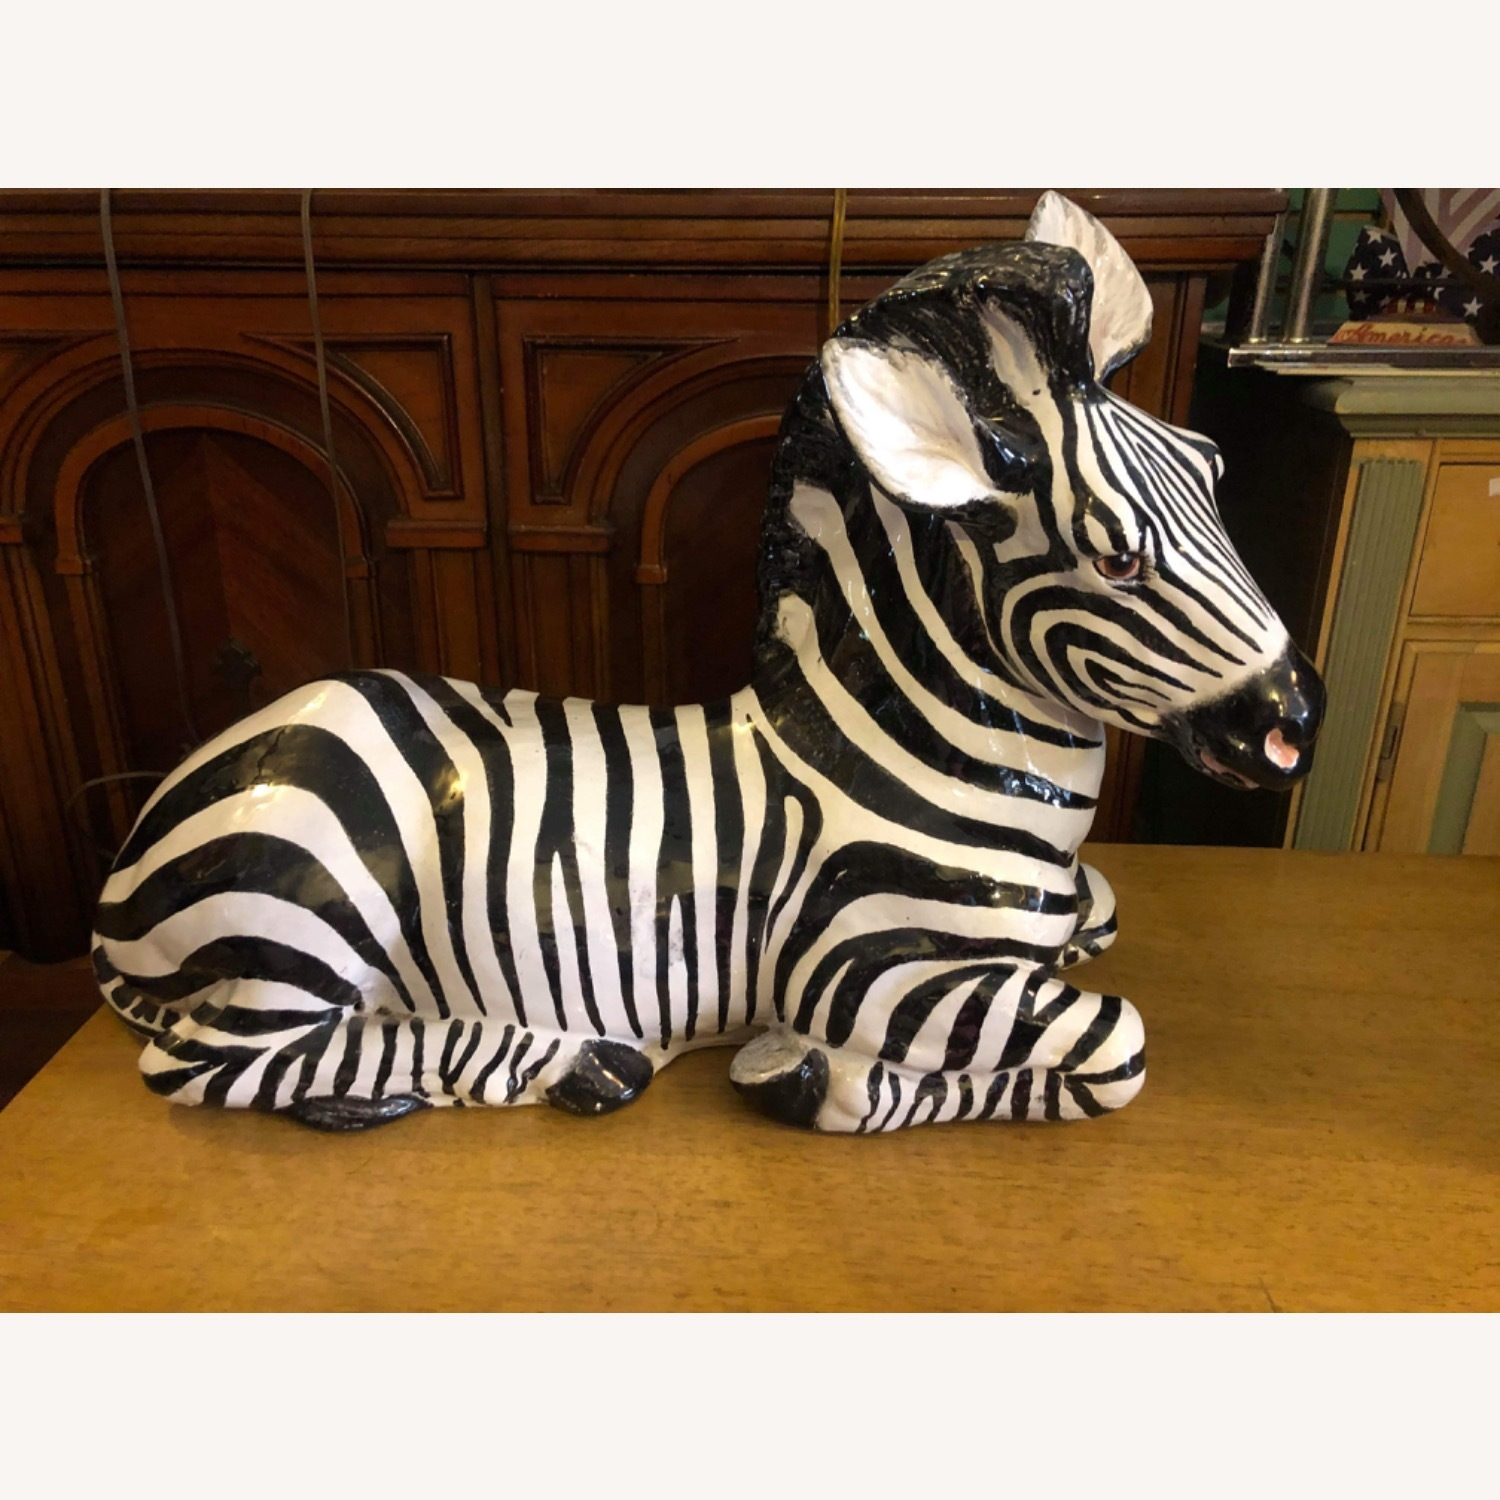 Vintage 1960s Ceramic Zebra Made in Italy - image-1